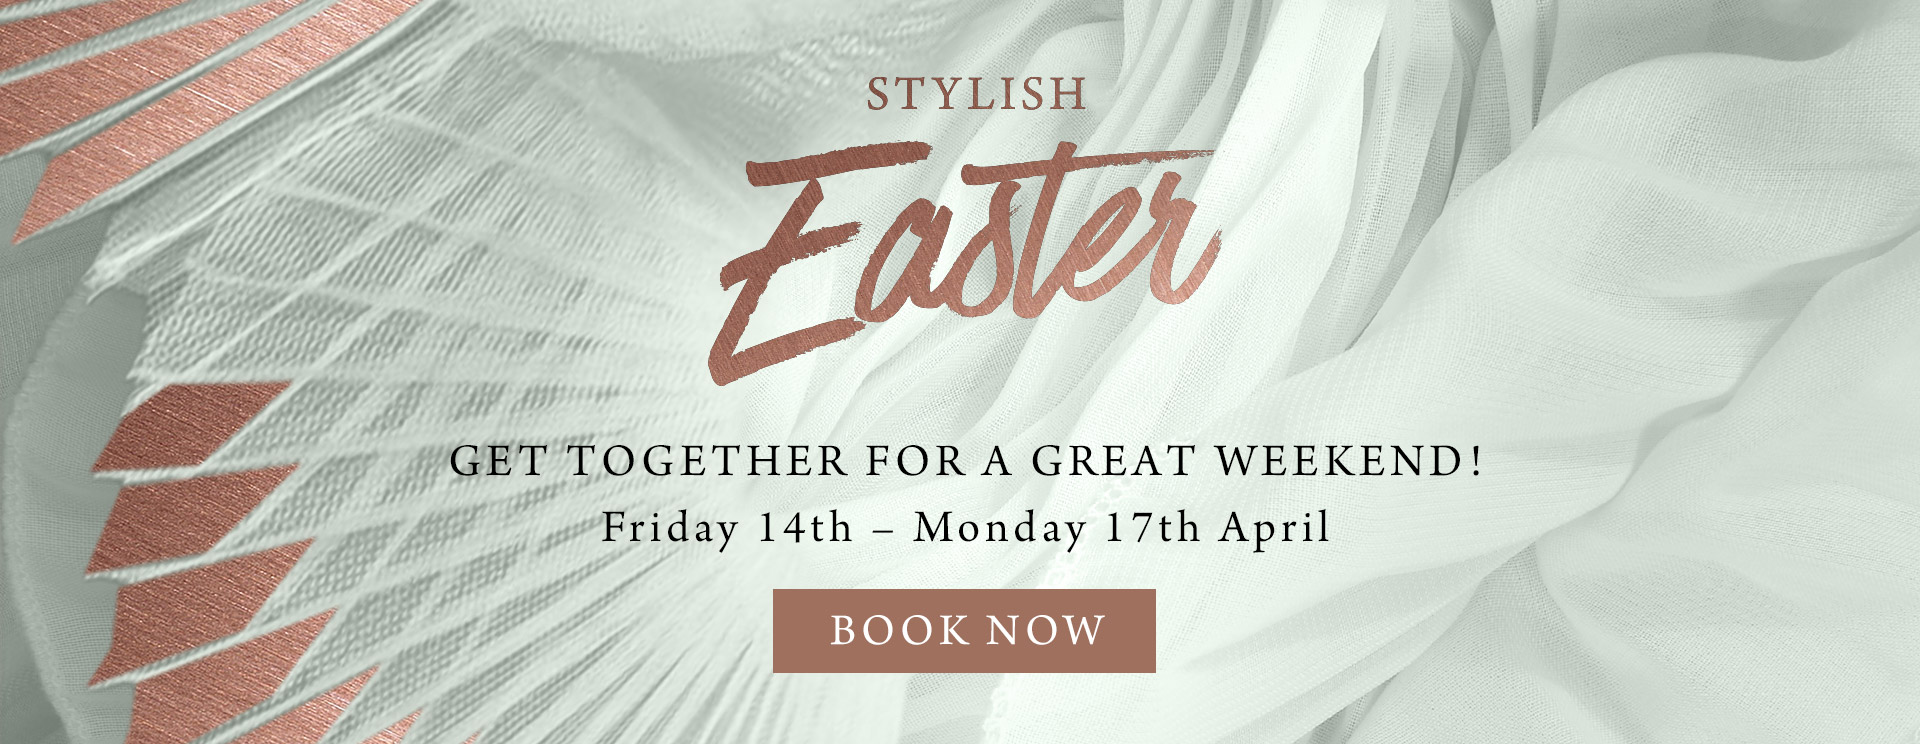 Stylish Easter at The Old Cottage - Book now